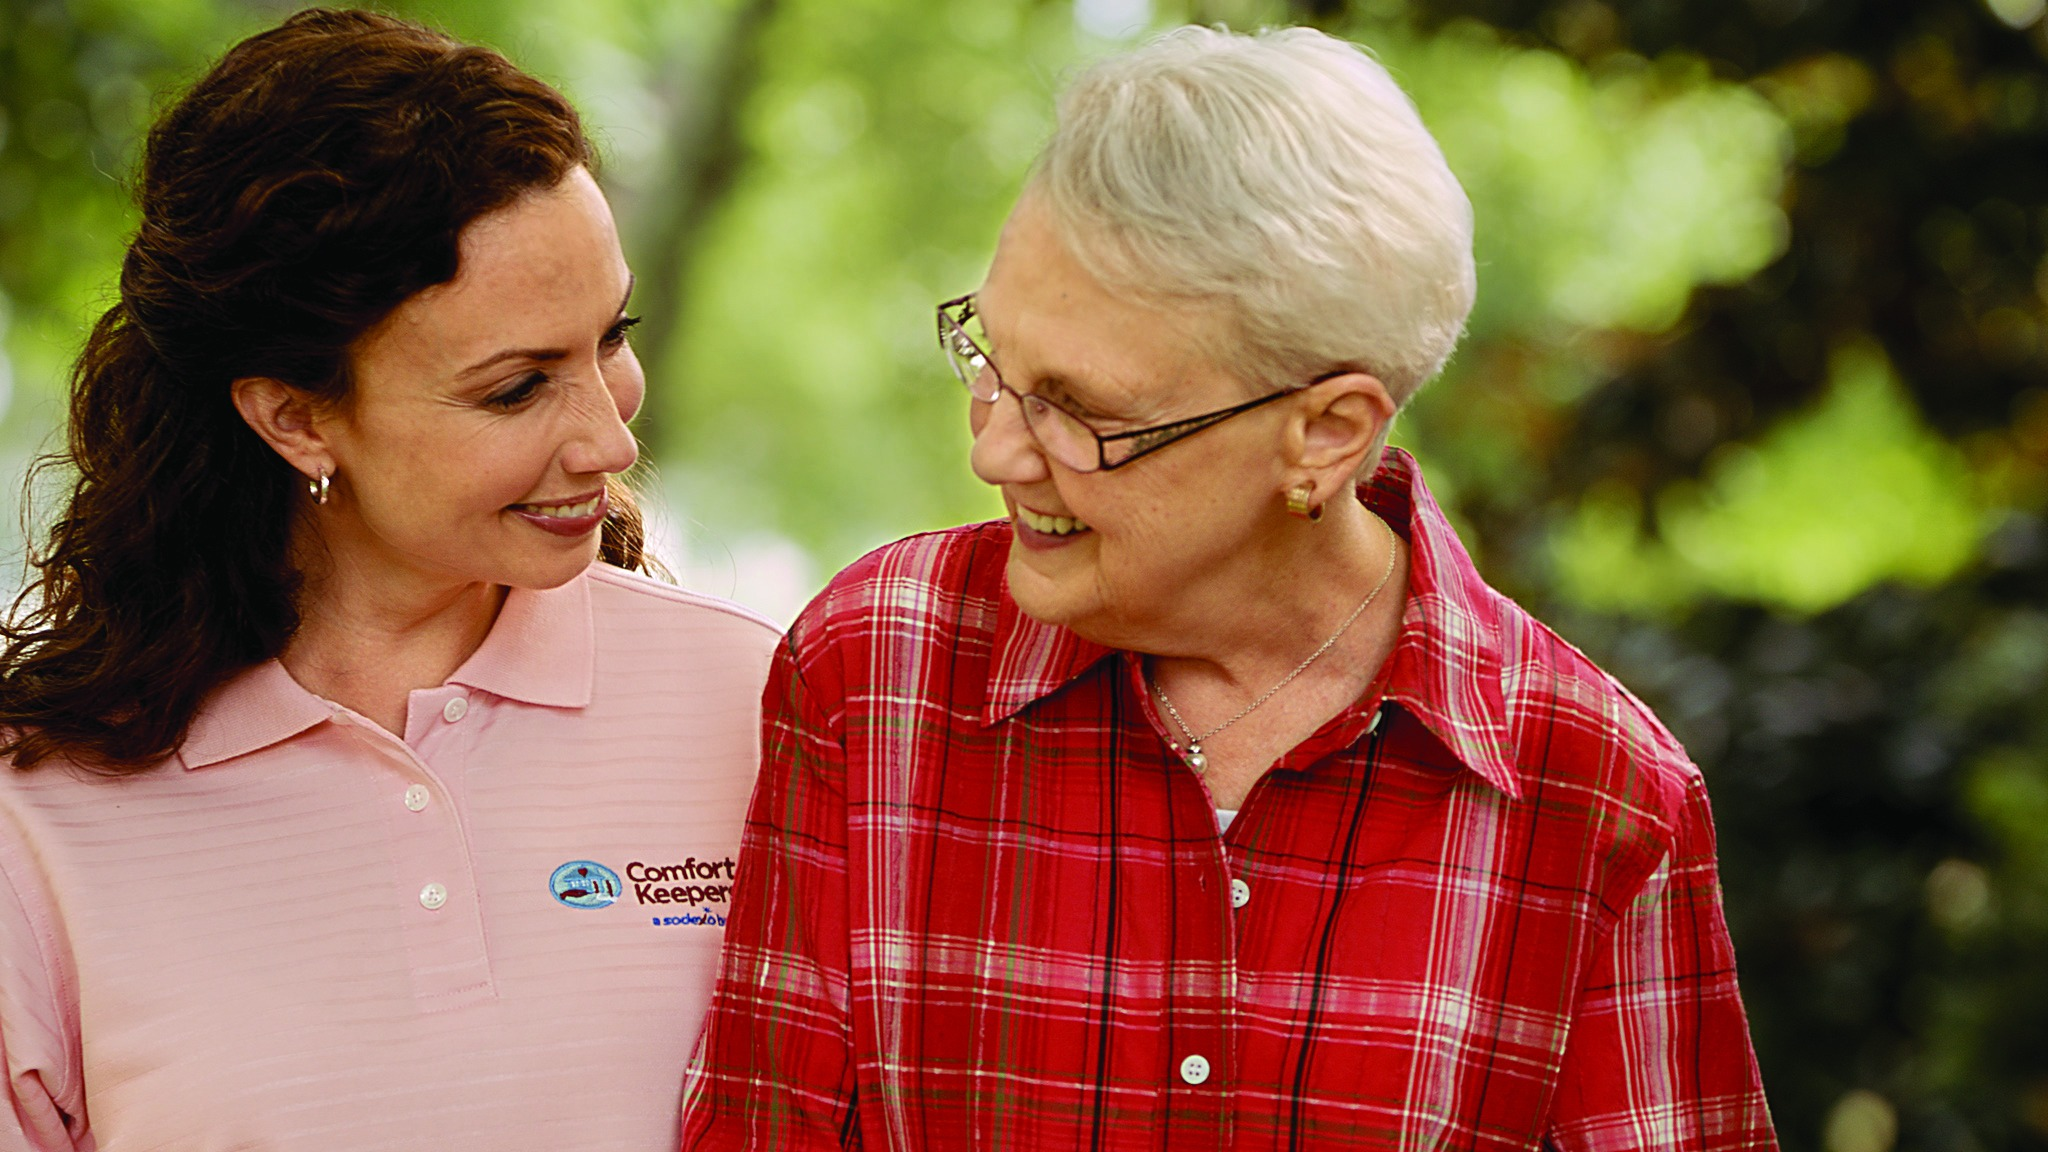 Westminister, CA is the place to be for superior senior care